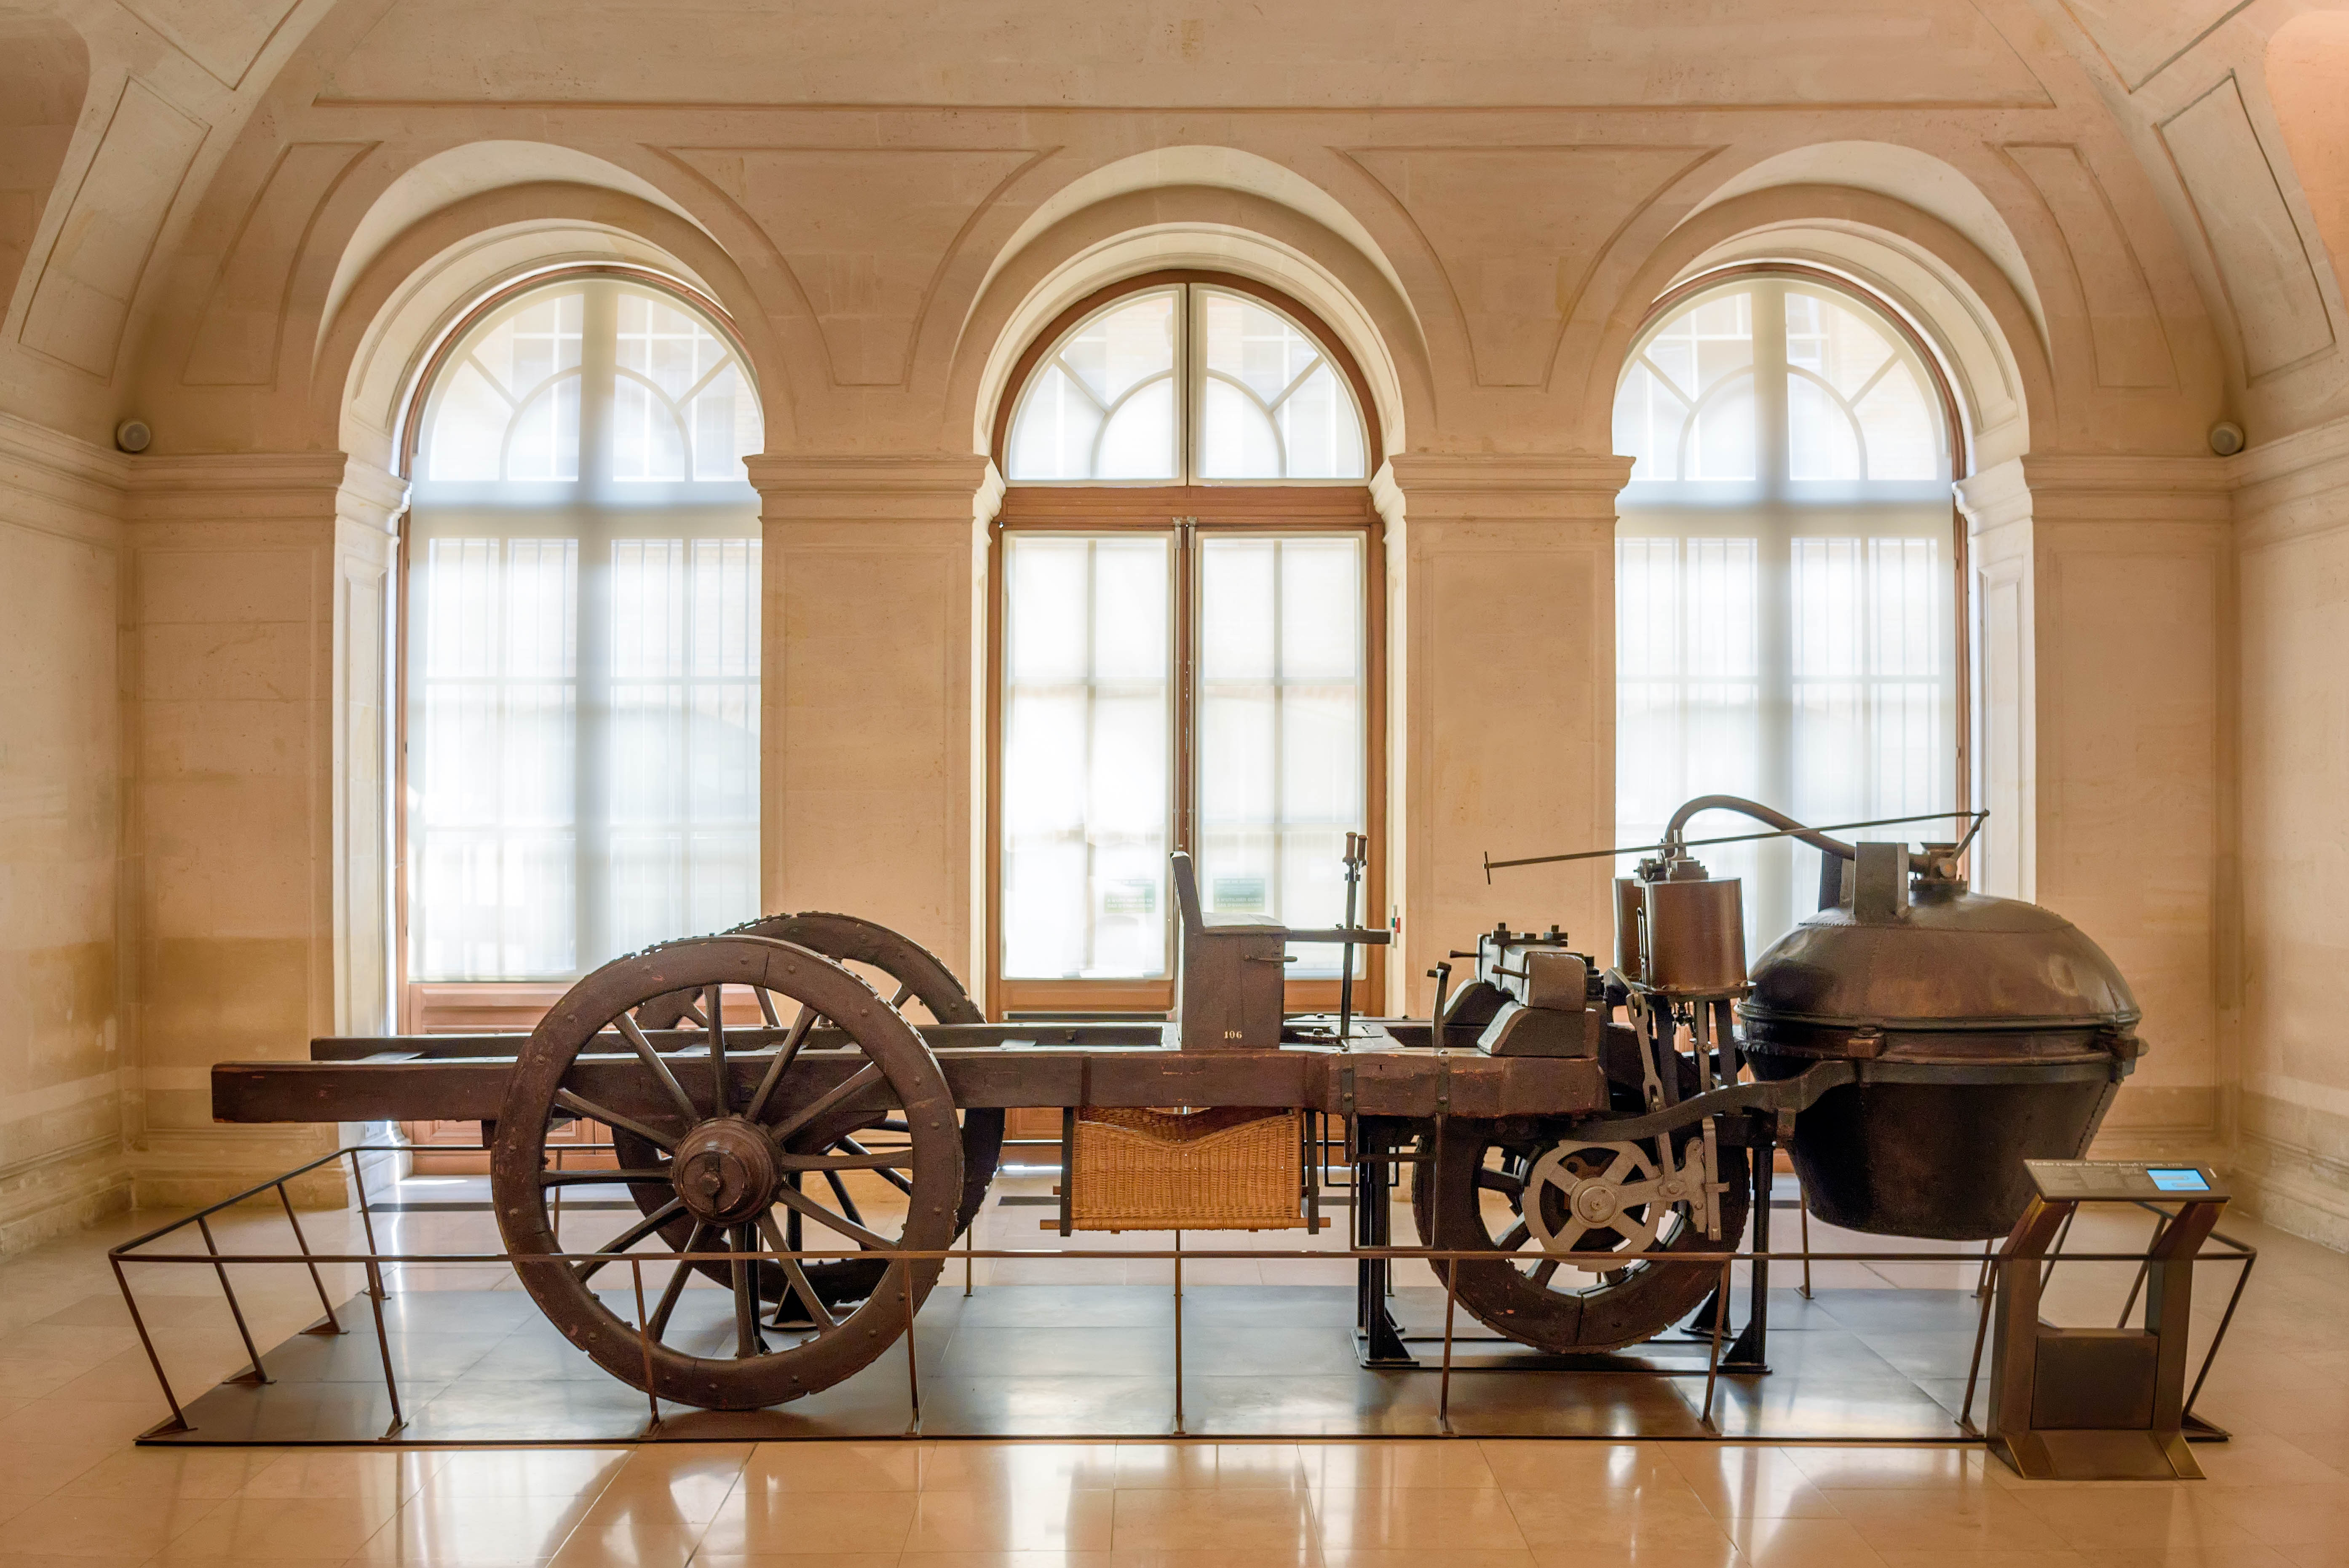 automobile in history Baby, it's cold inside check out our brief history on automotive air conditioning, brought to you by the automotive experts at automobile magazine online.